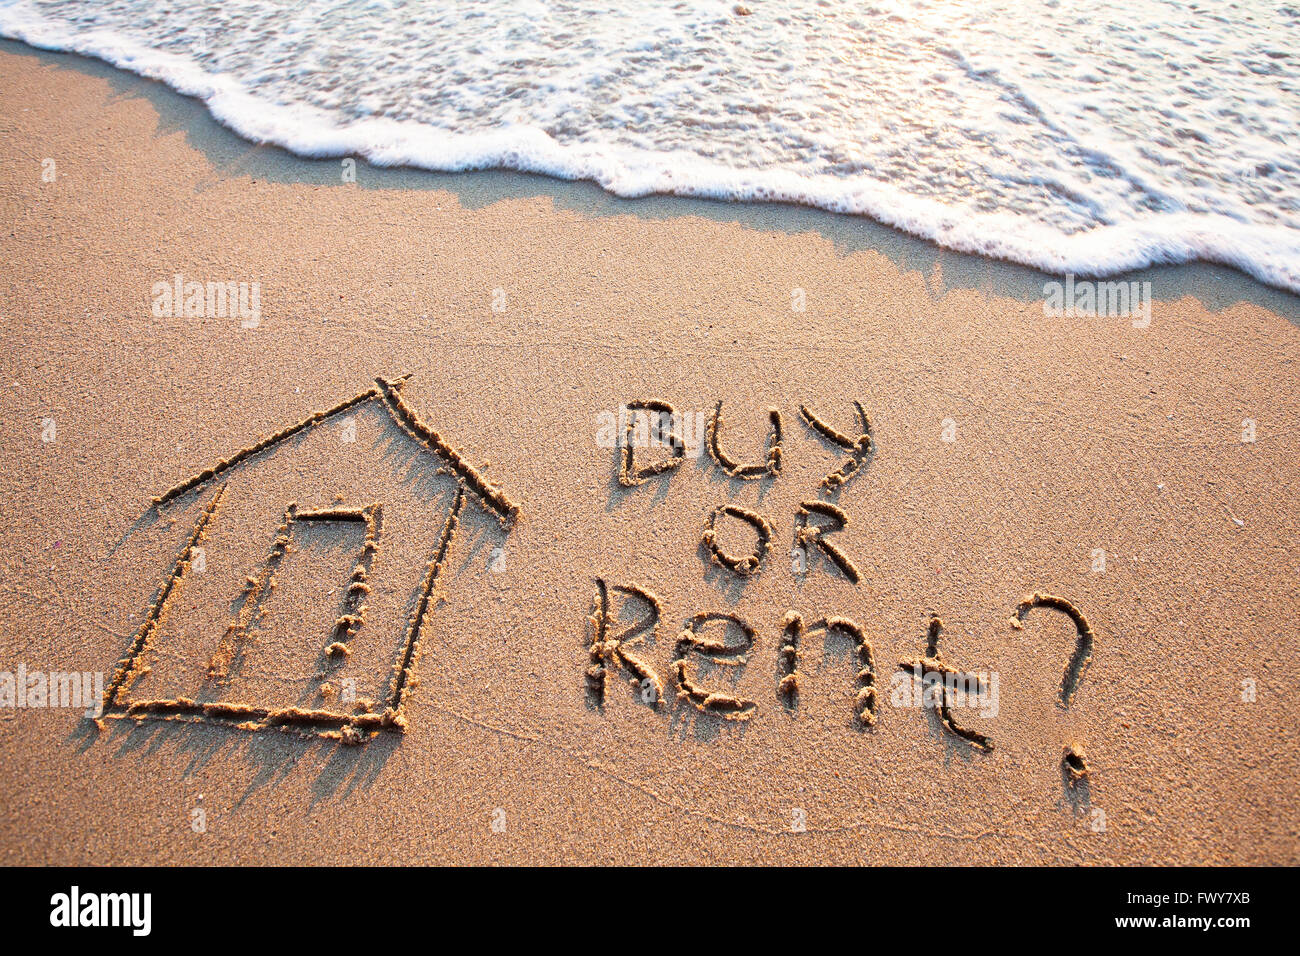 buy or rent concept, text on the sand, real estate - Stock Image